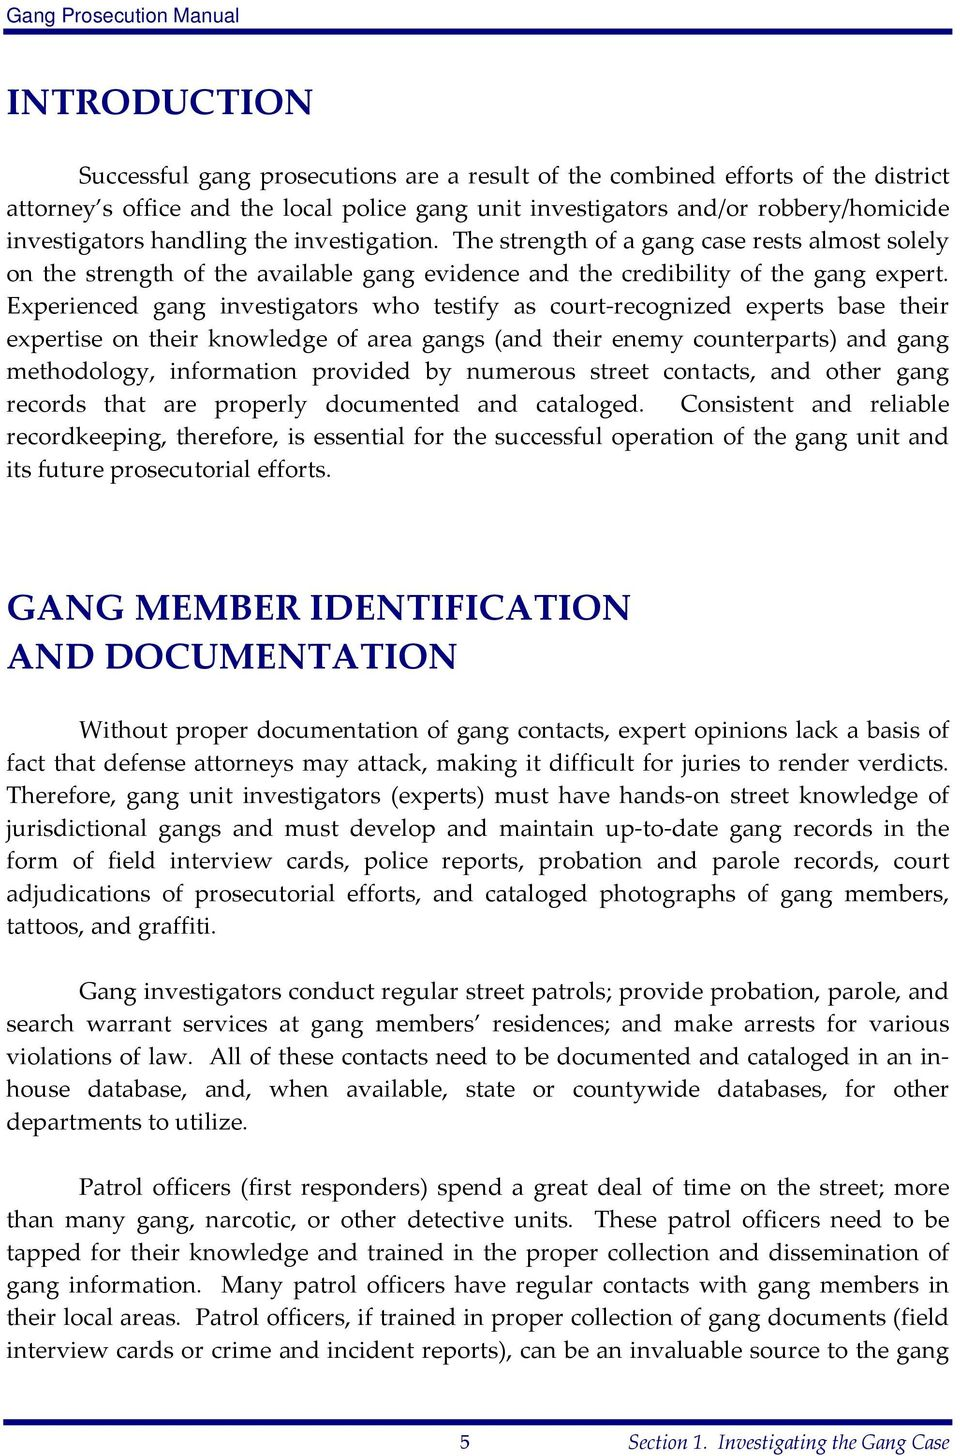 Experienced gang investigators who testify as court recognized experts base their expertise on their knowledge of area gangs (and their enemy counterparts) and gang methodology, information provided